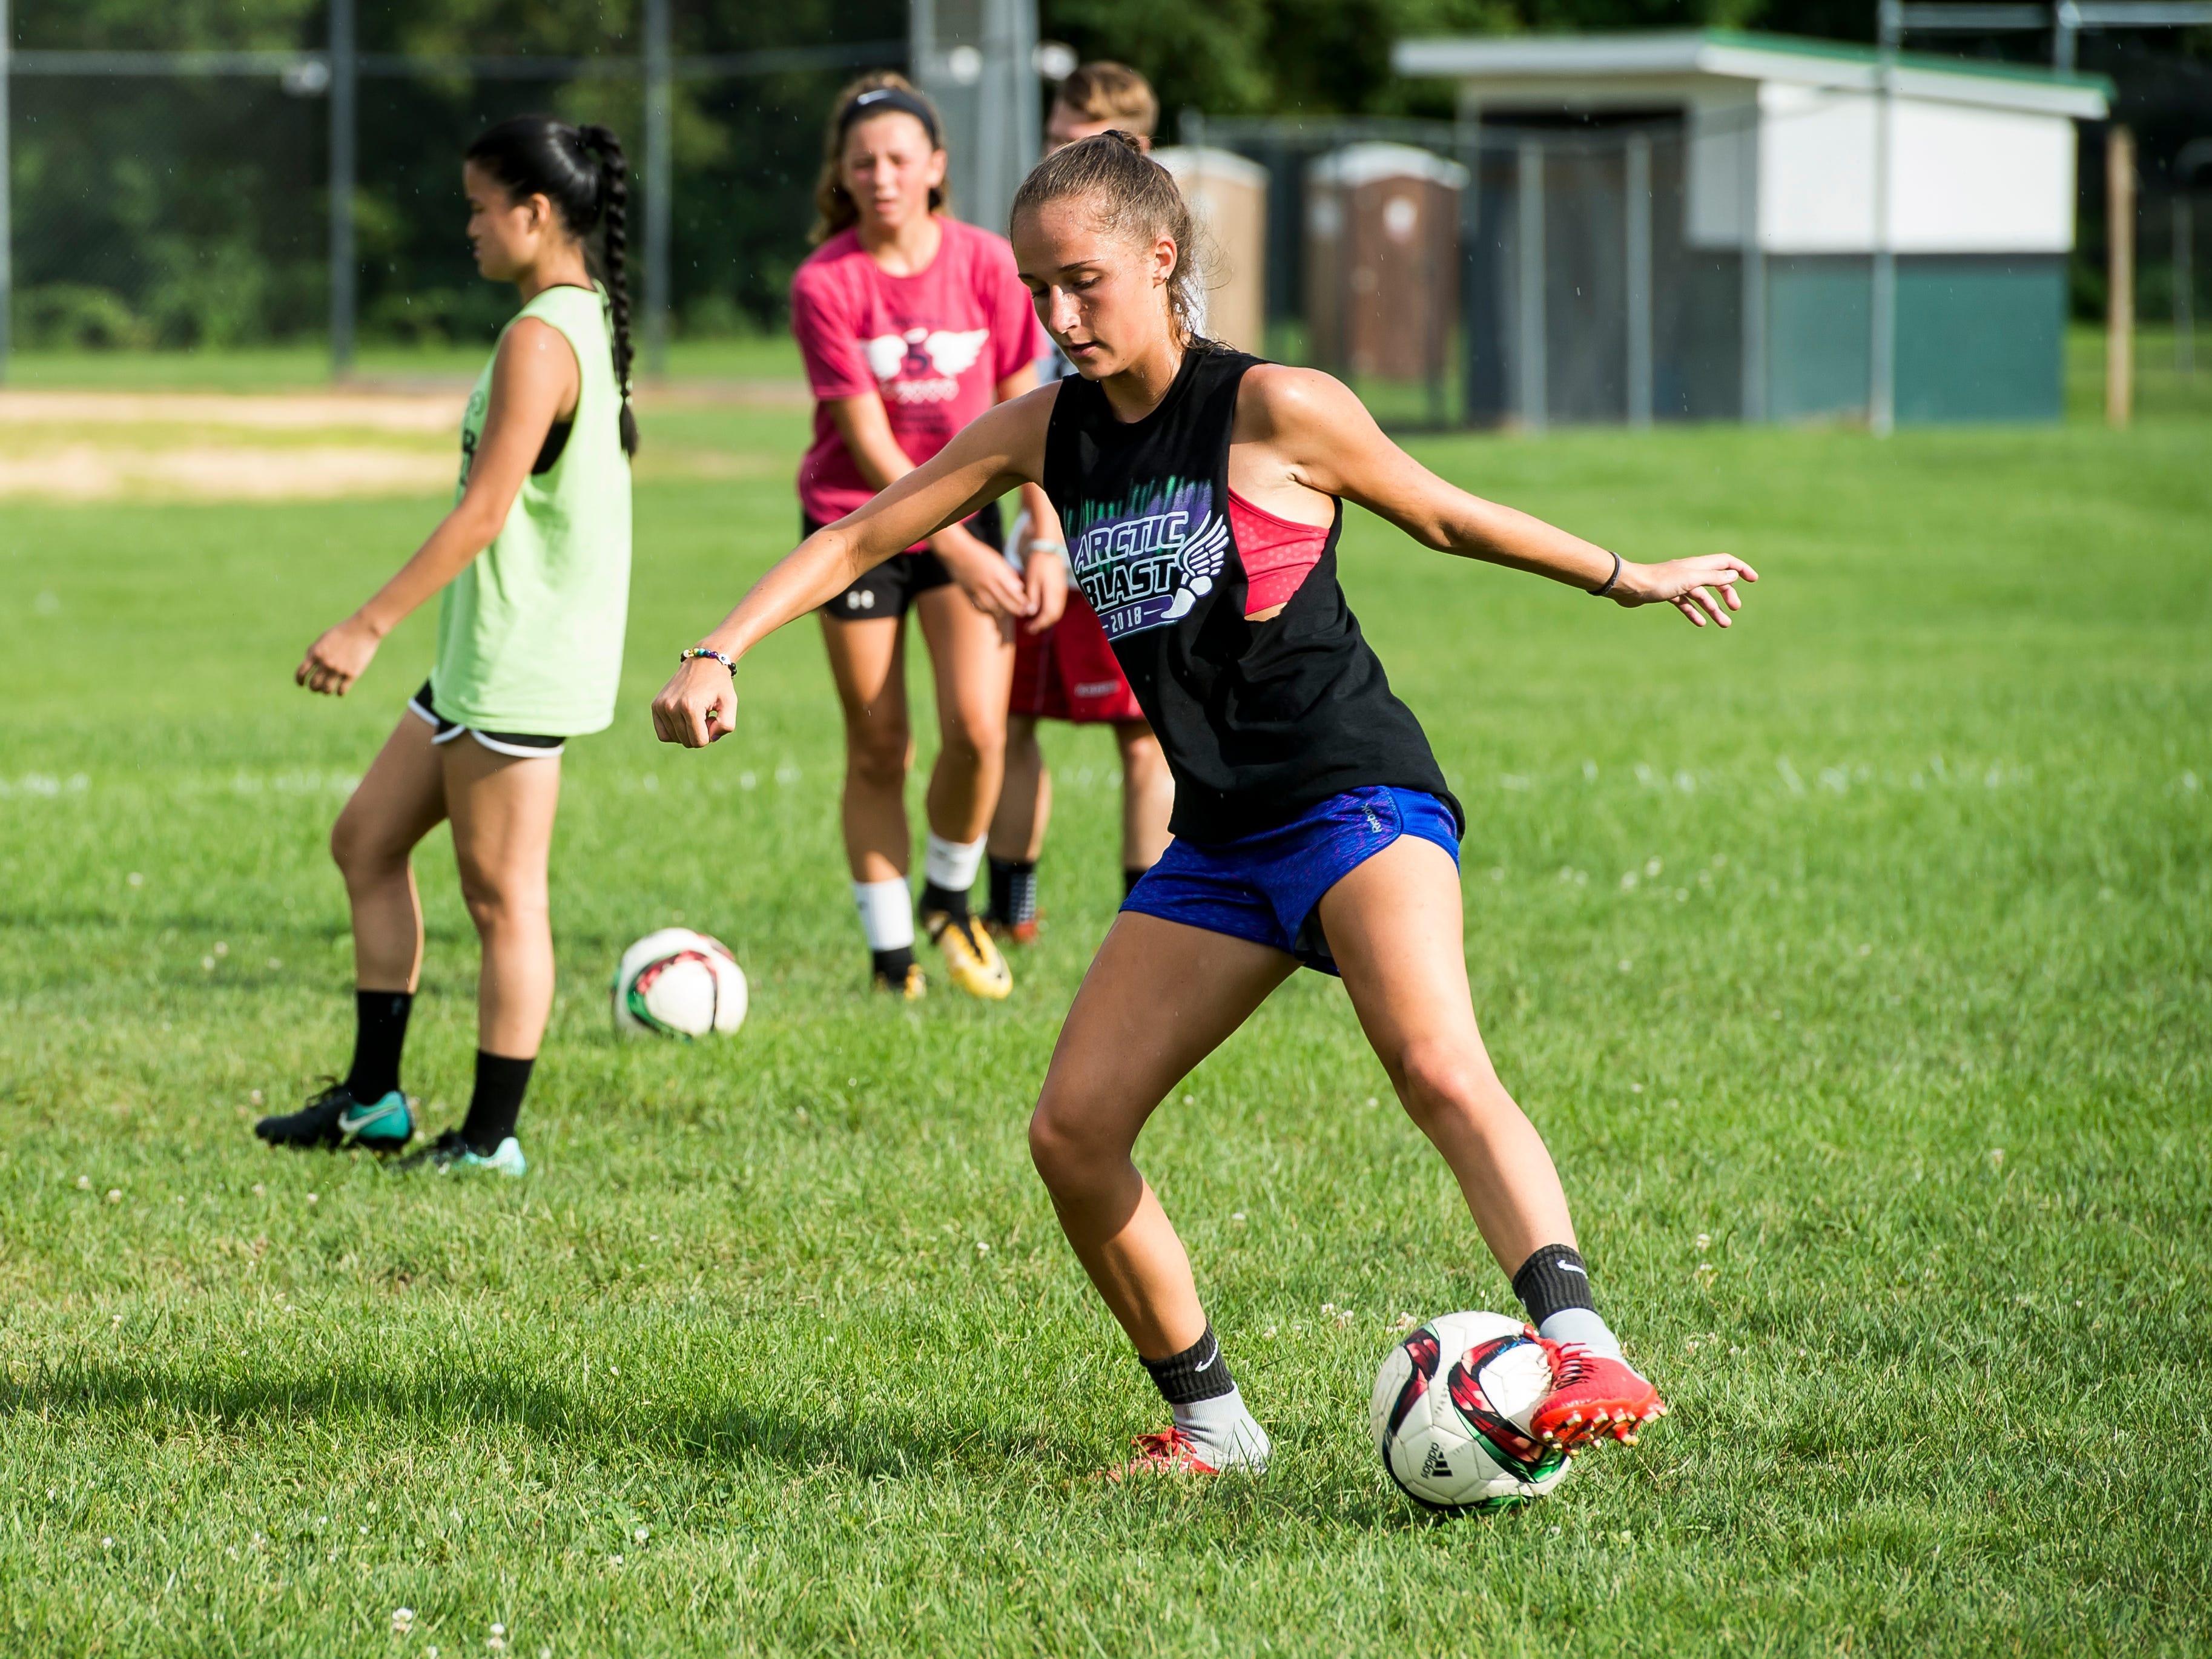 Fairfield sophomore Rio Strosnider dribbles the ball during during the first day of fall sports practice on Monday, August 13, 2018.